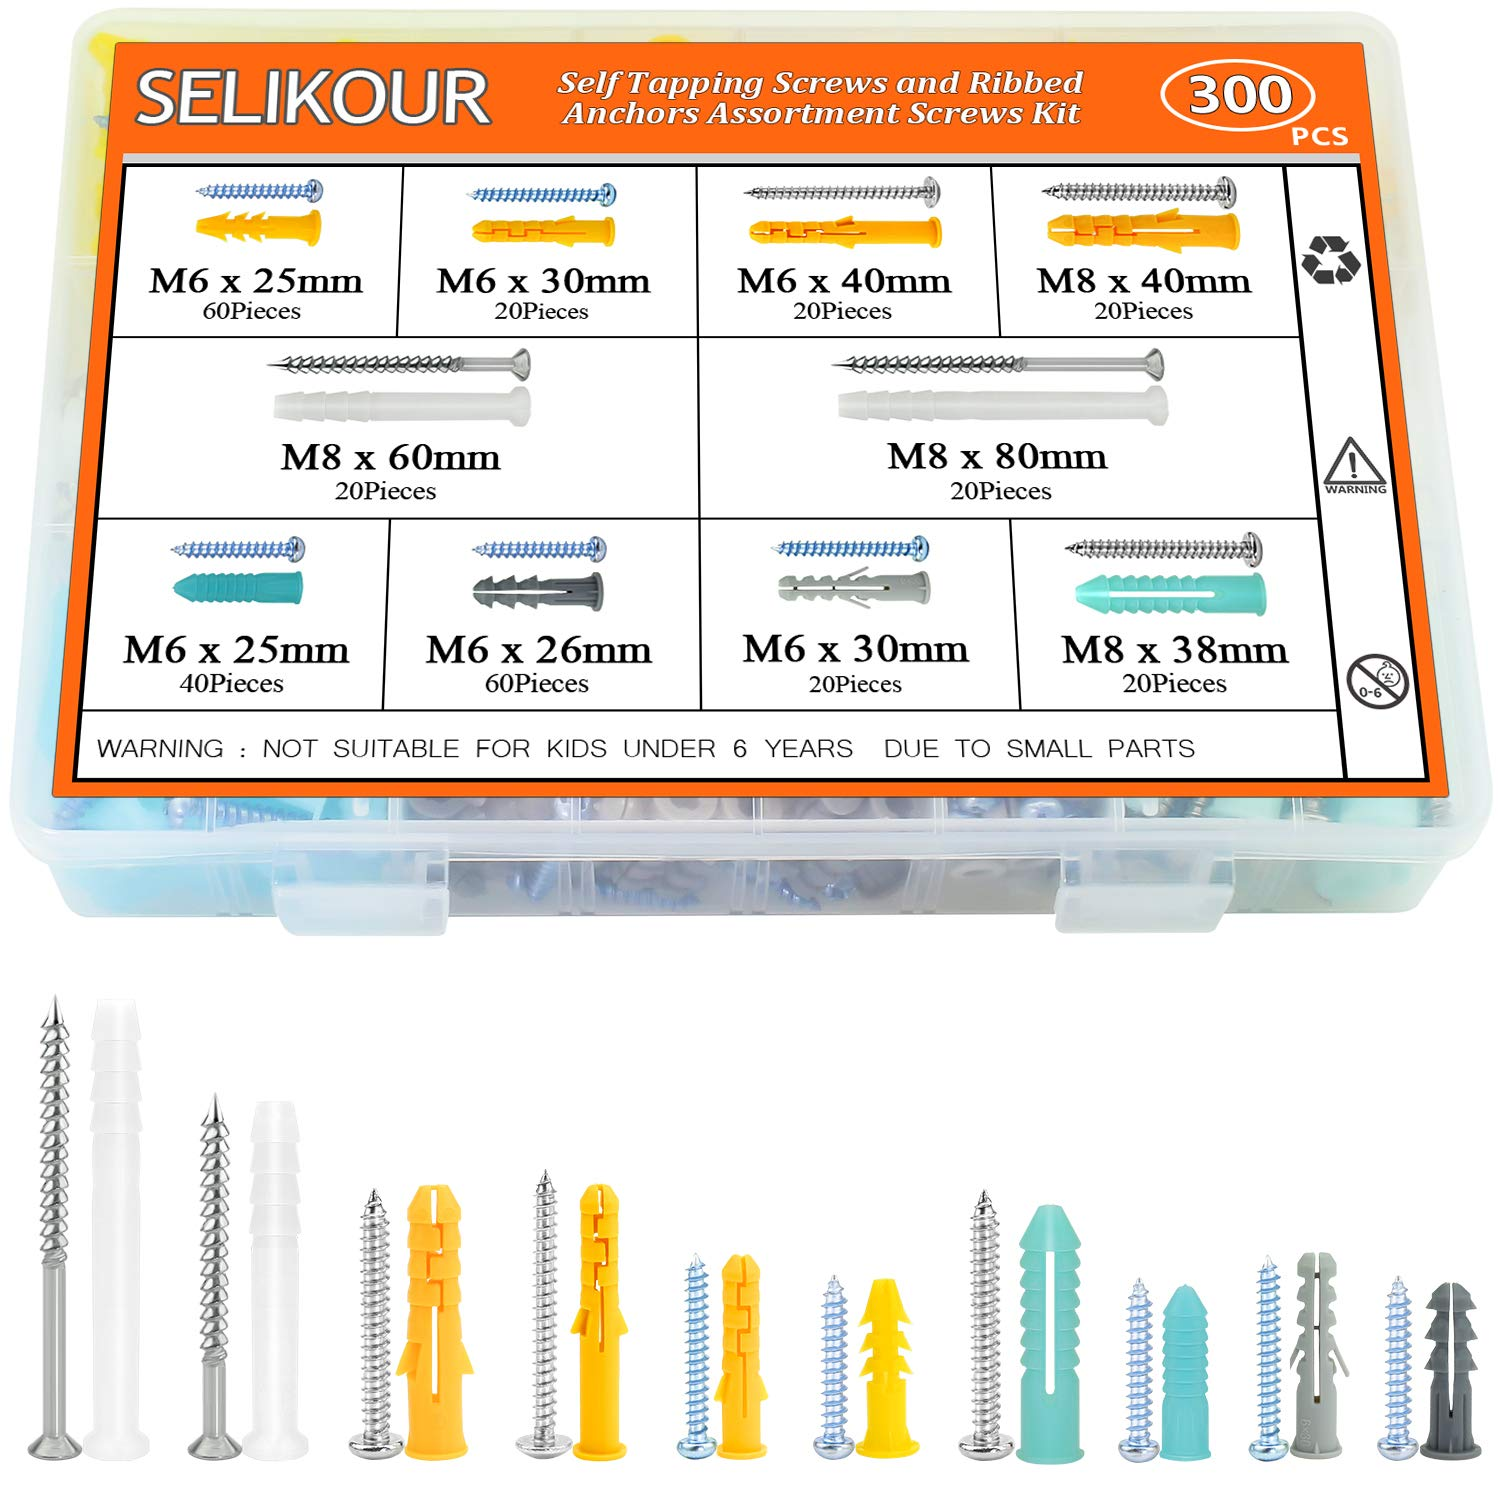 SELIKOUR 300Pcs Drywall Anchors and Screws, Plastic Self Drilling Drywall Ribbed Anchors Assortment Kit for Drywall, Hollow-Wall Hanging Wall Shelf or Blinds by SELIKOUR